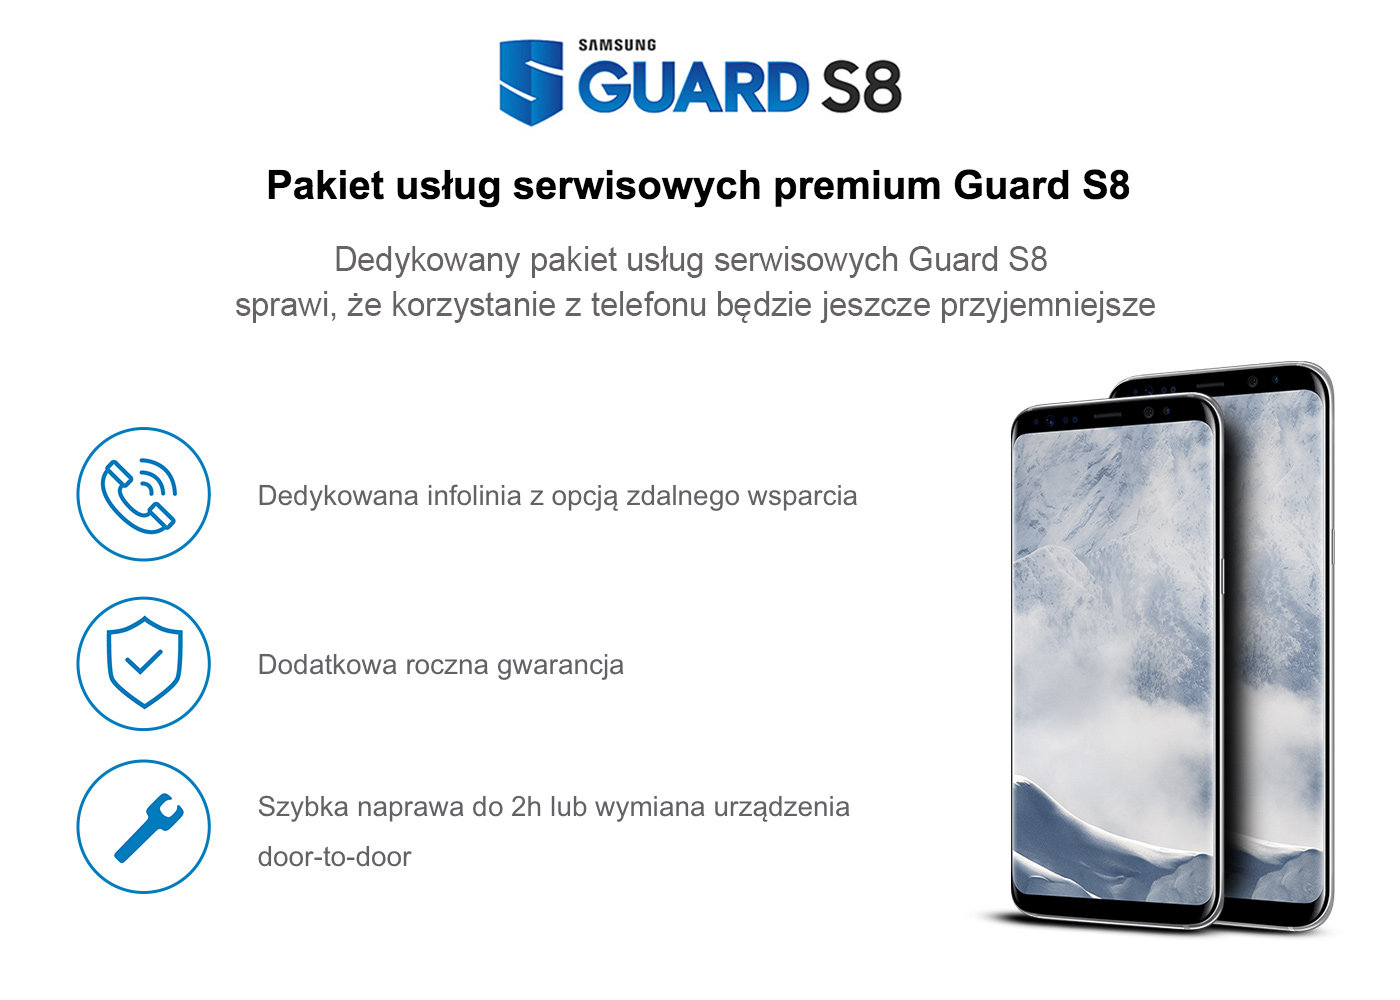 Samsung Guard